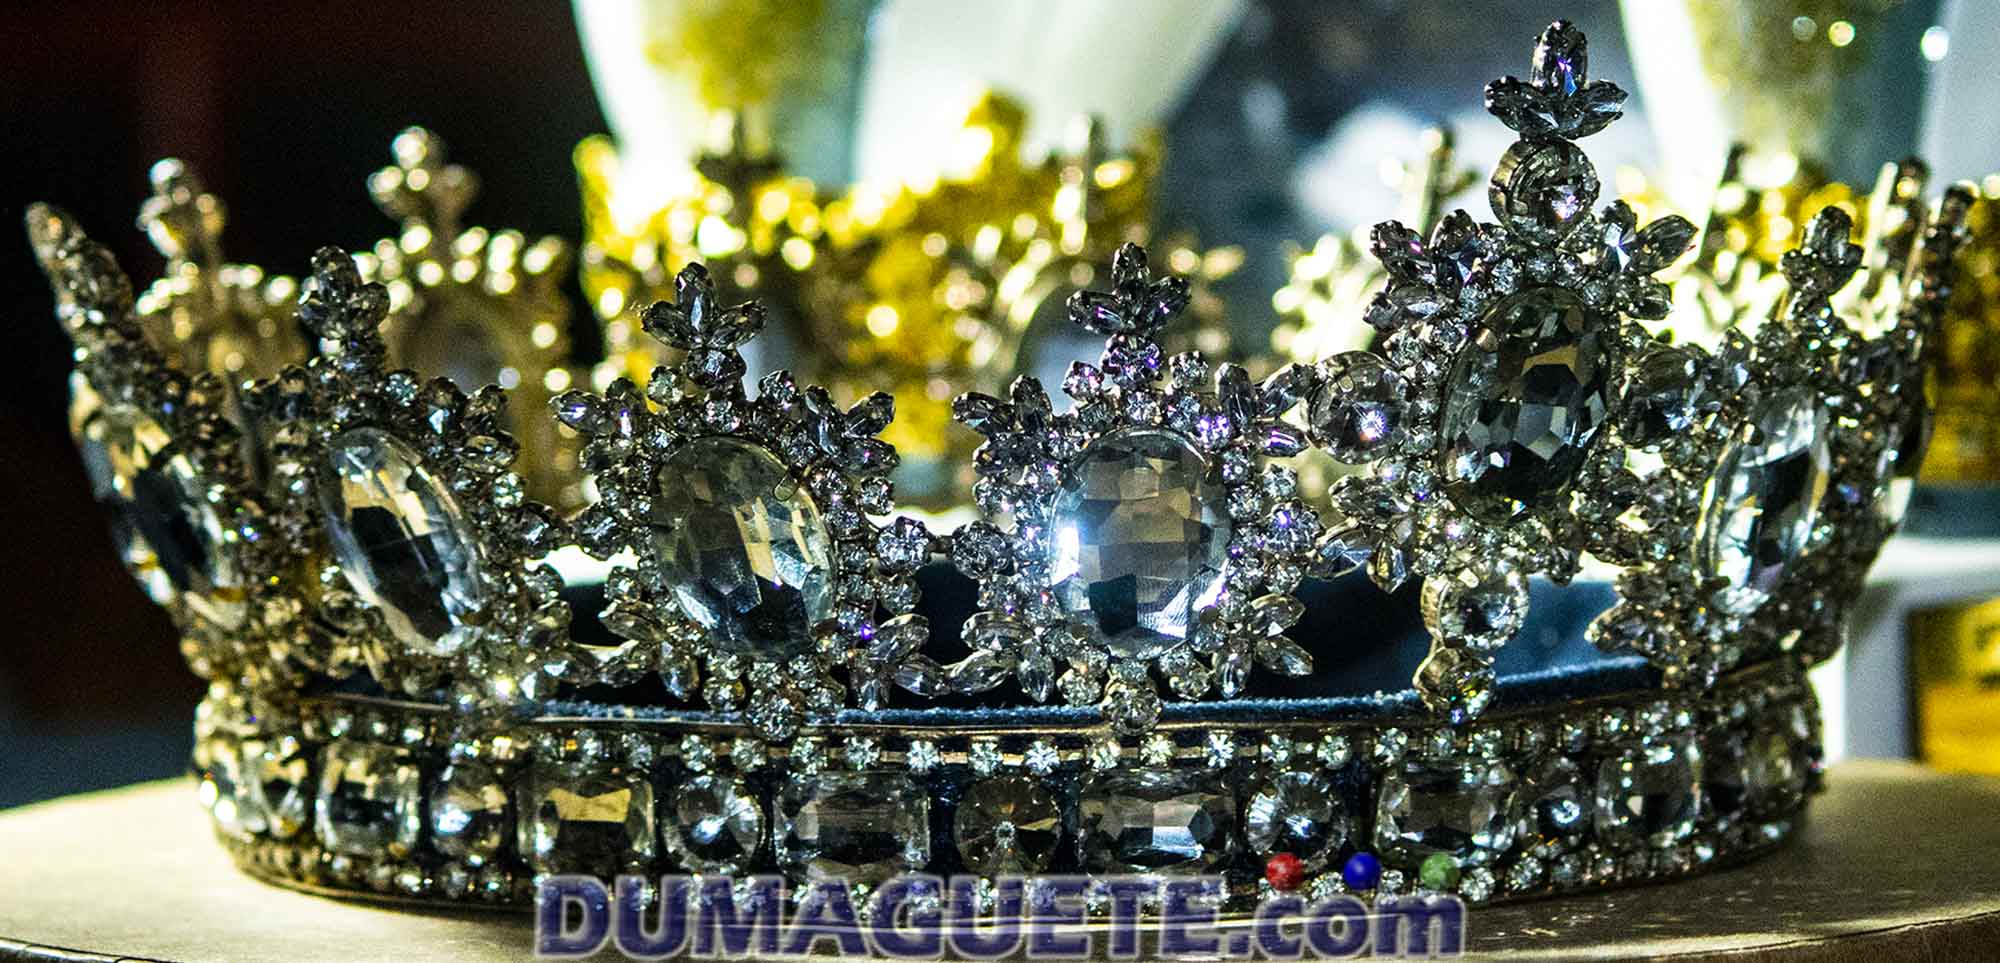 Miss Dumaguete 2019 - Coronation Night